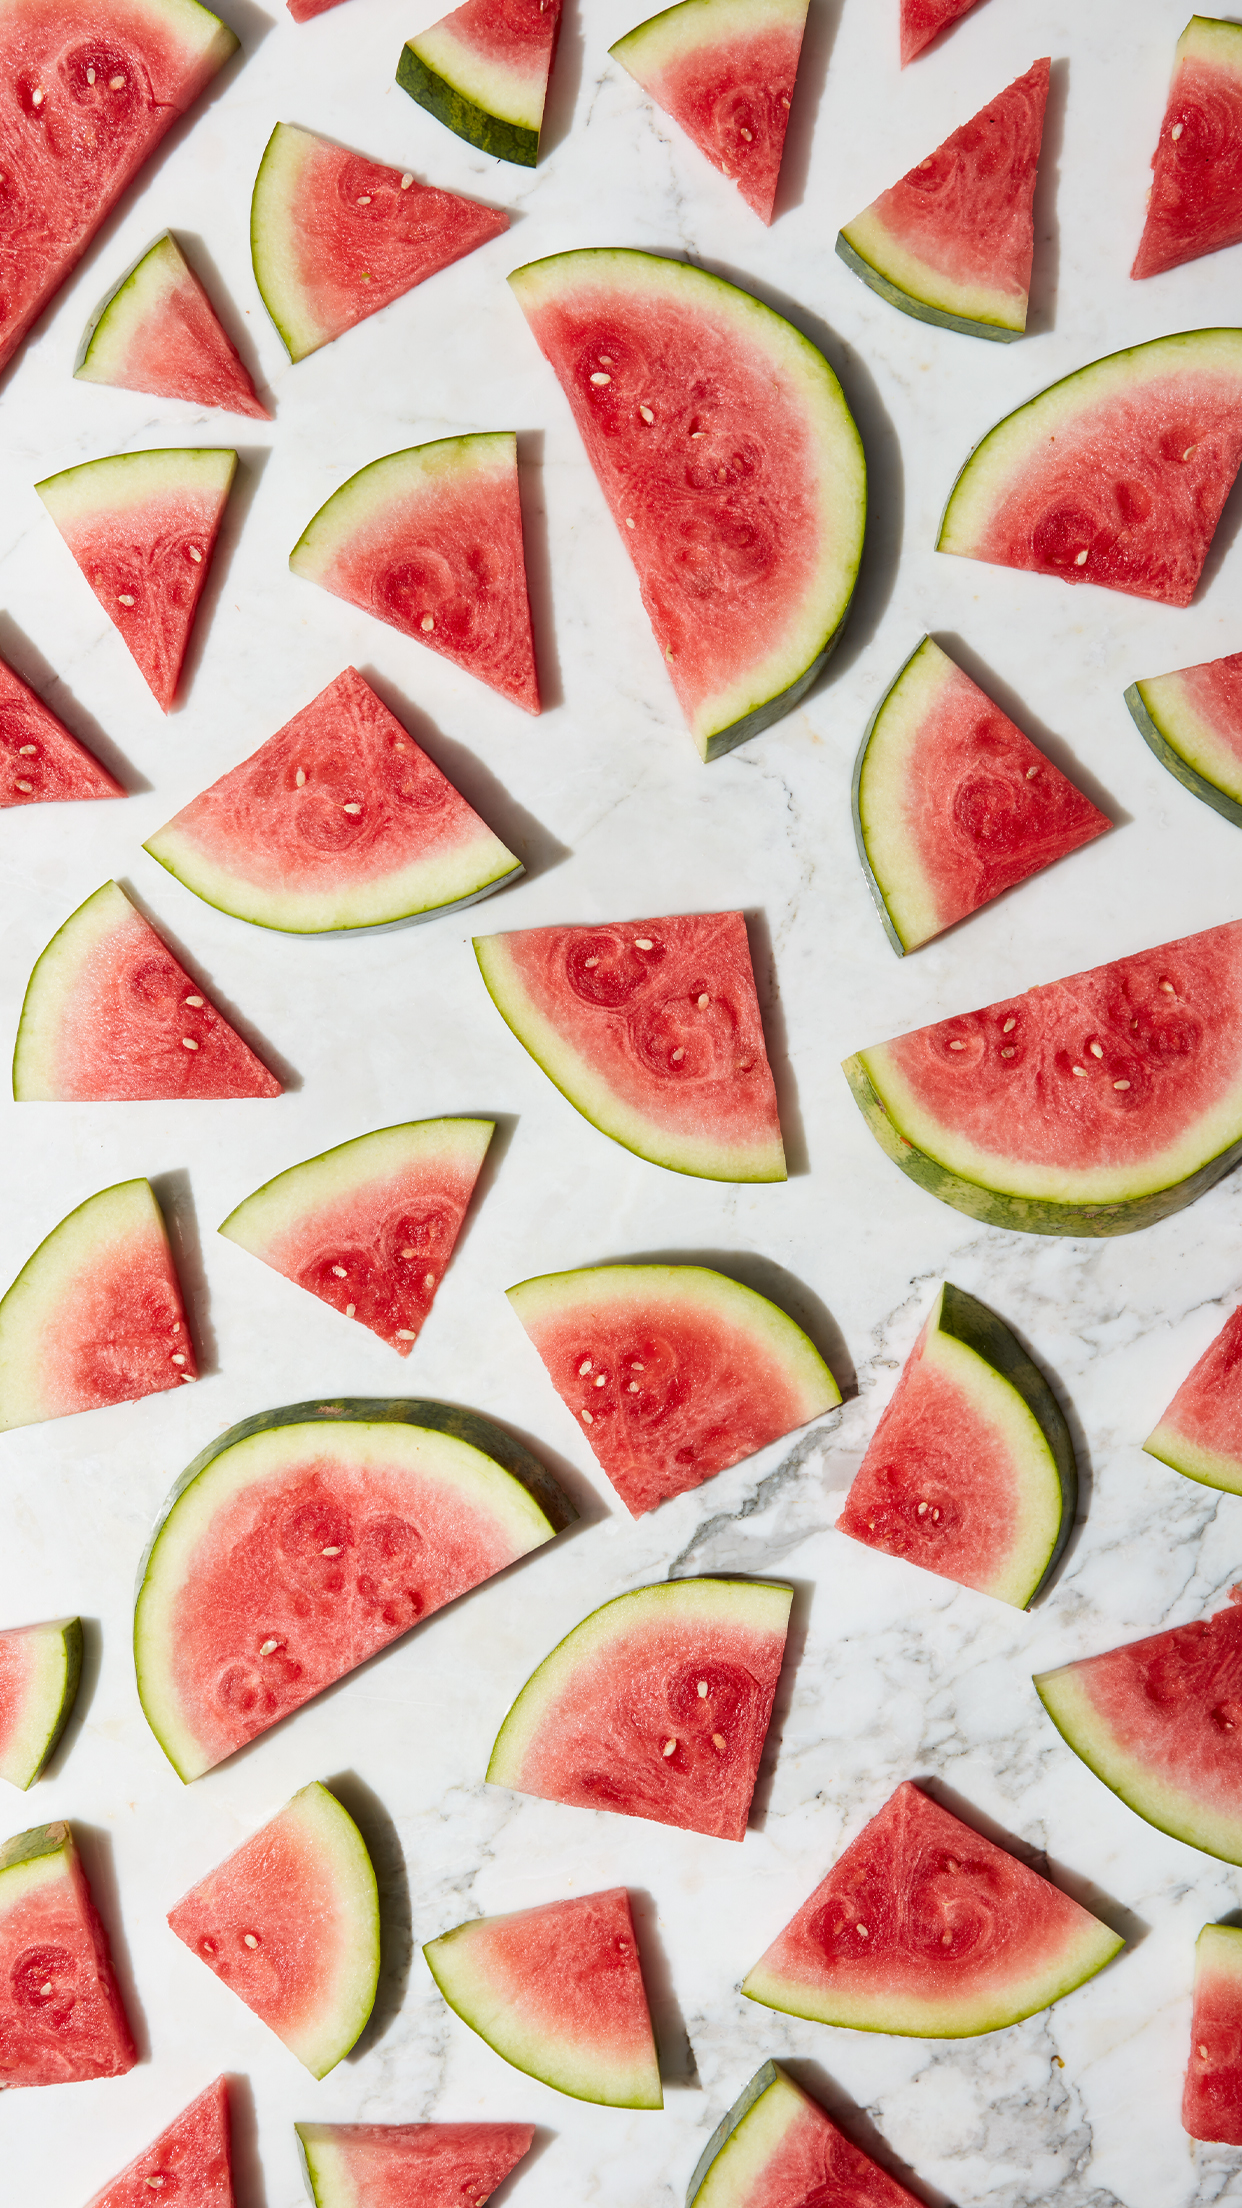 Perk Up Your Phone With This Watermelon Wallpaper Front